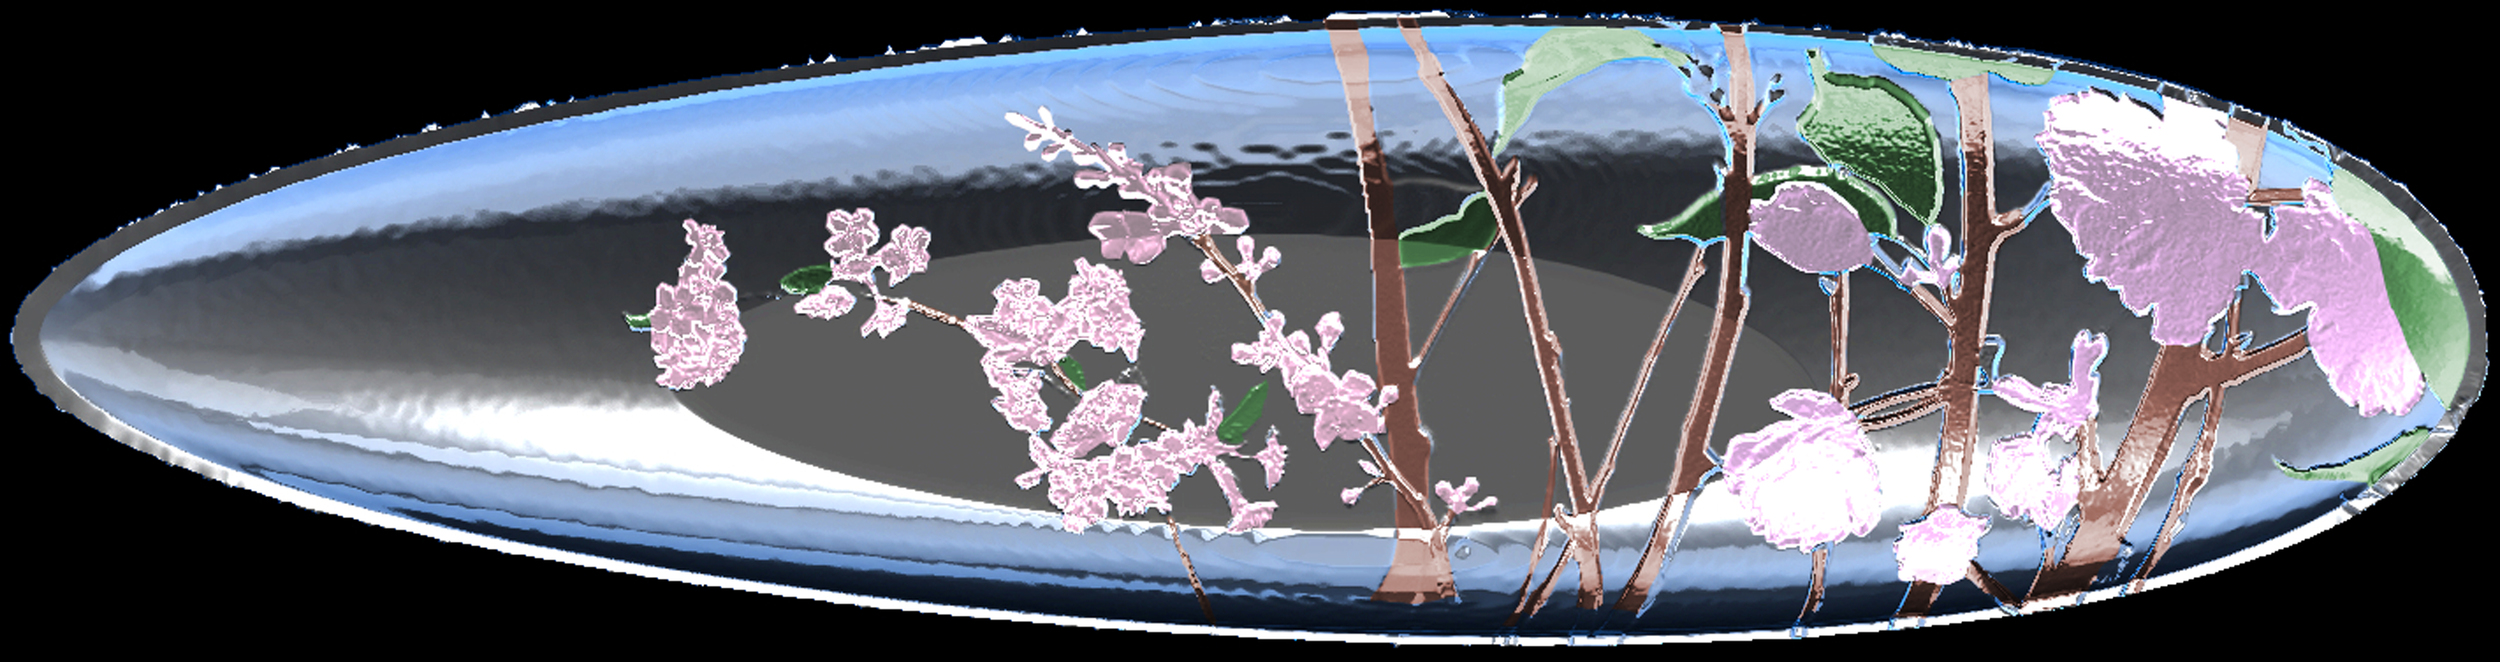 """Jesse Waugh """"Cherry Blossom Platter"""" 2012 Mixed metals and enamel"""